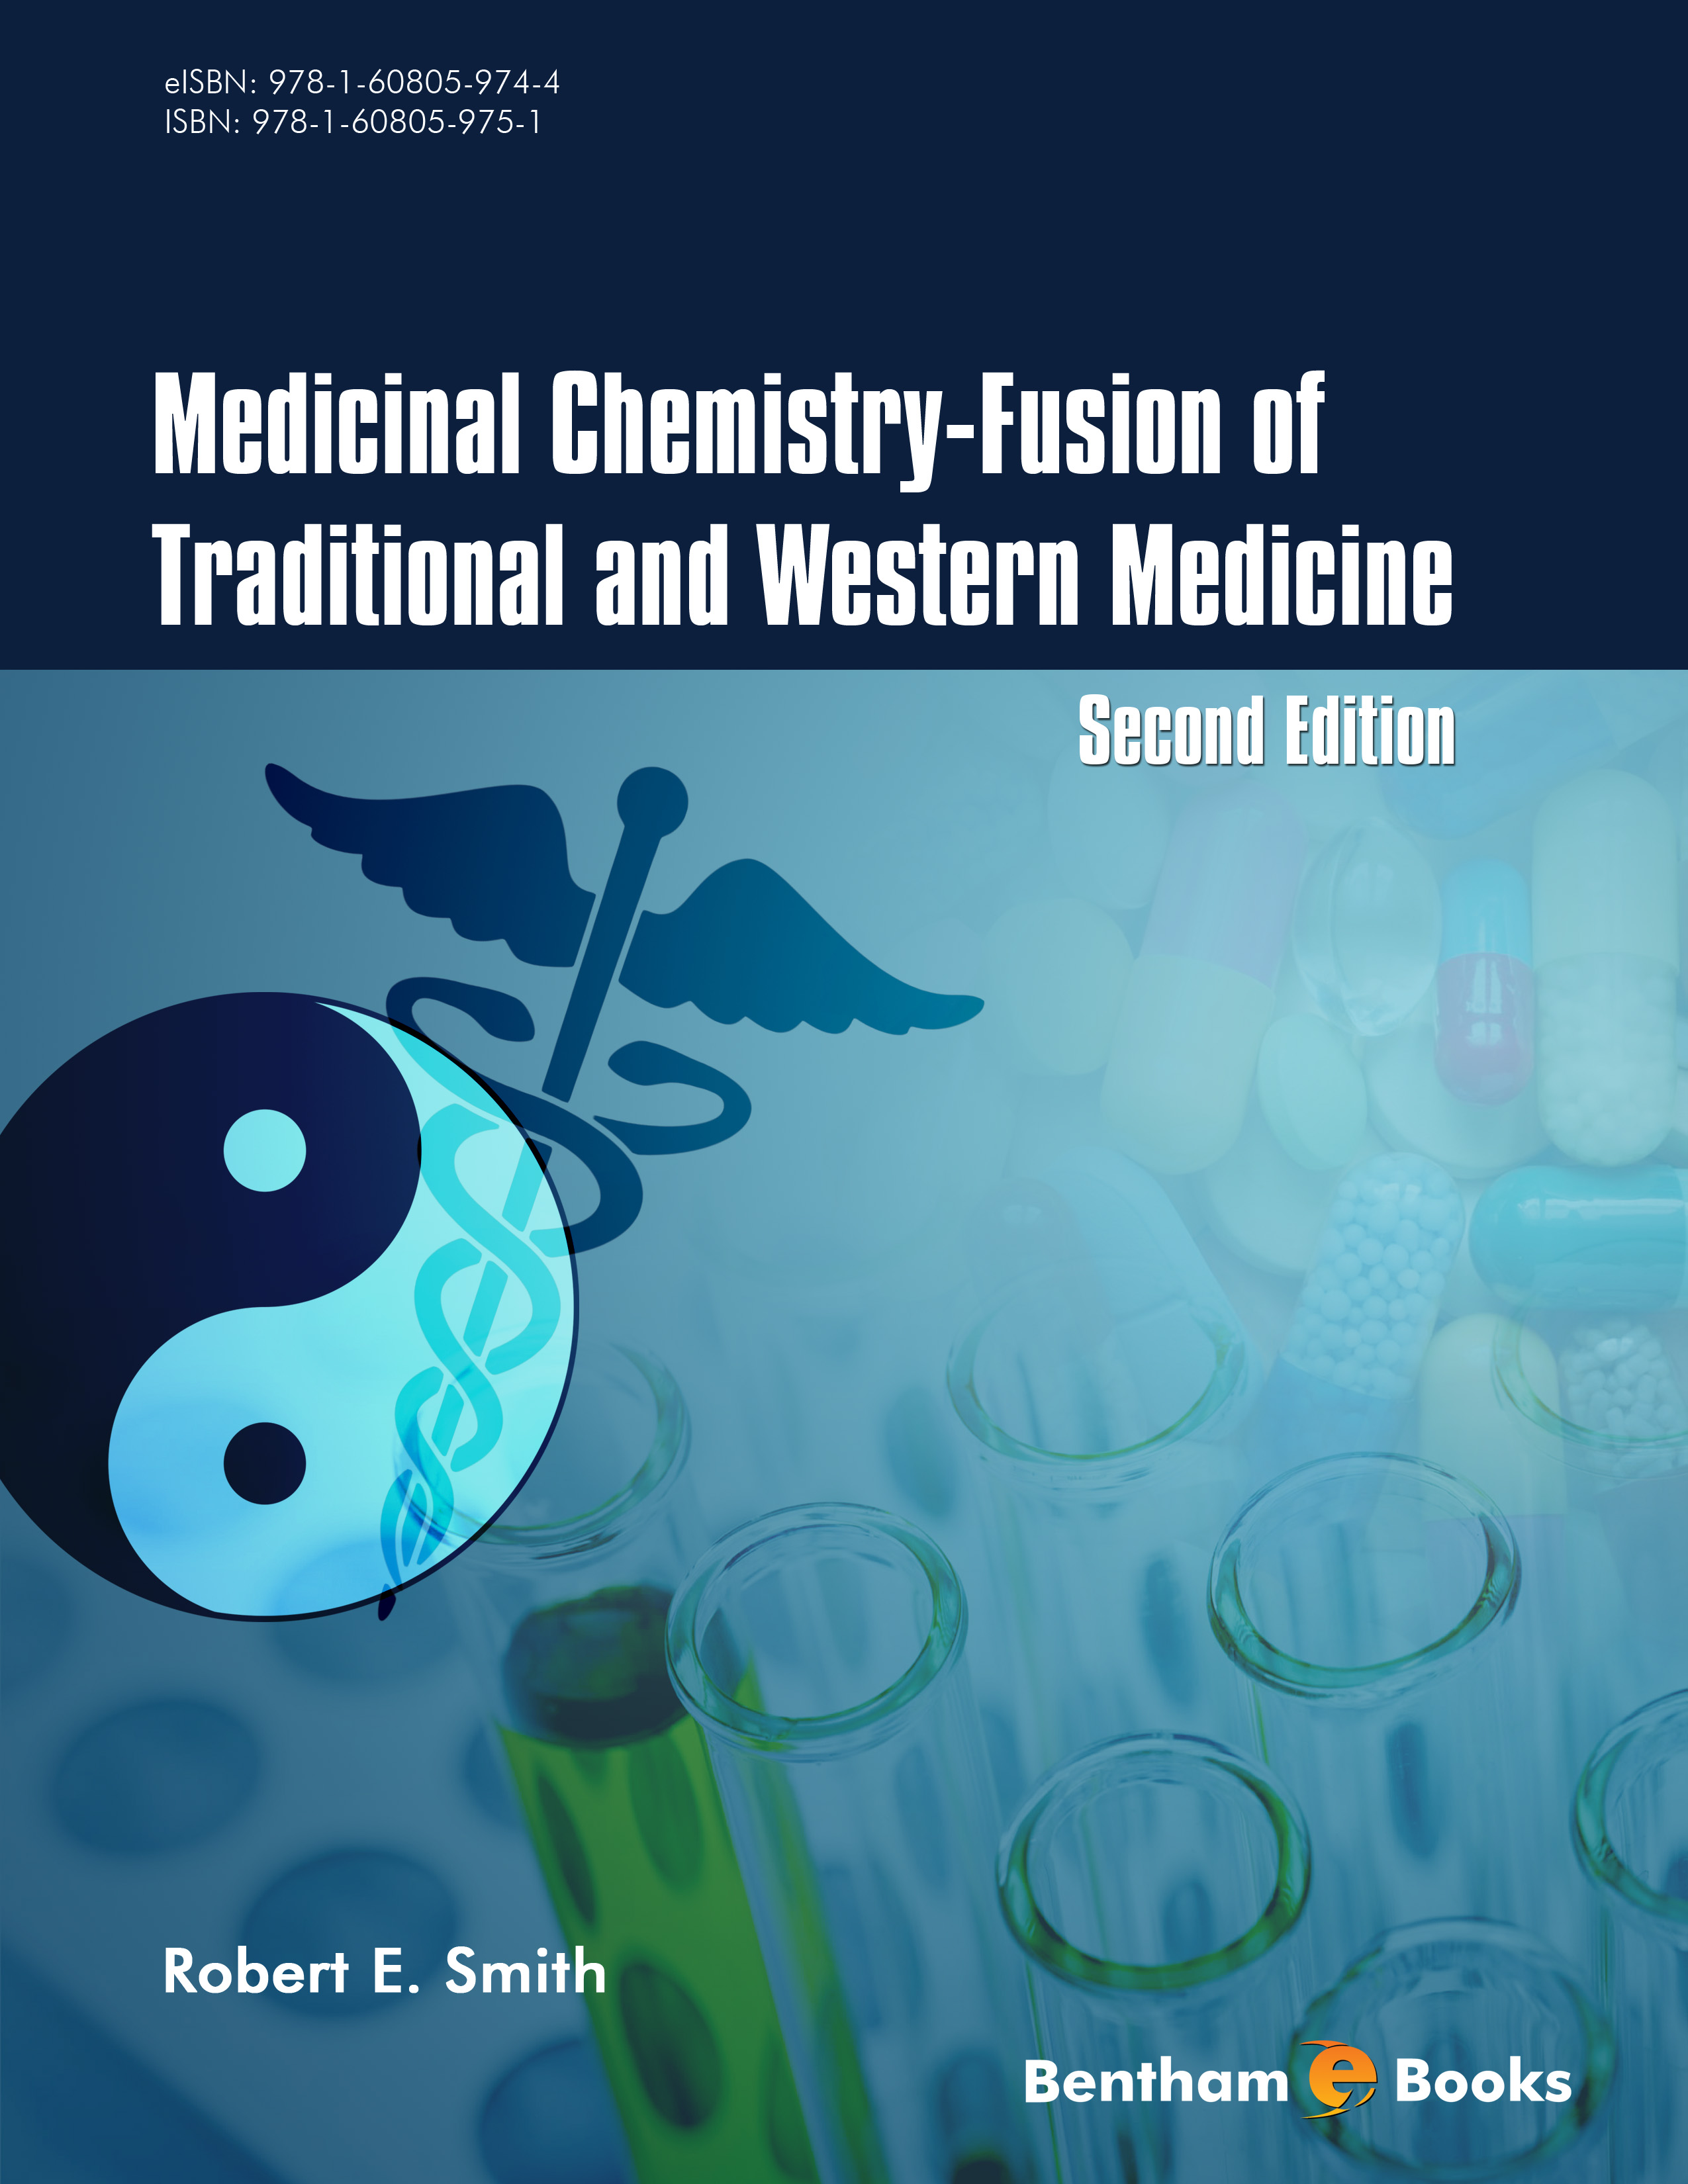 Medicinal Chemistry - Fusion of Traditional and Western Medicine, Second Edition